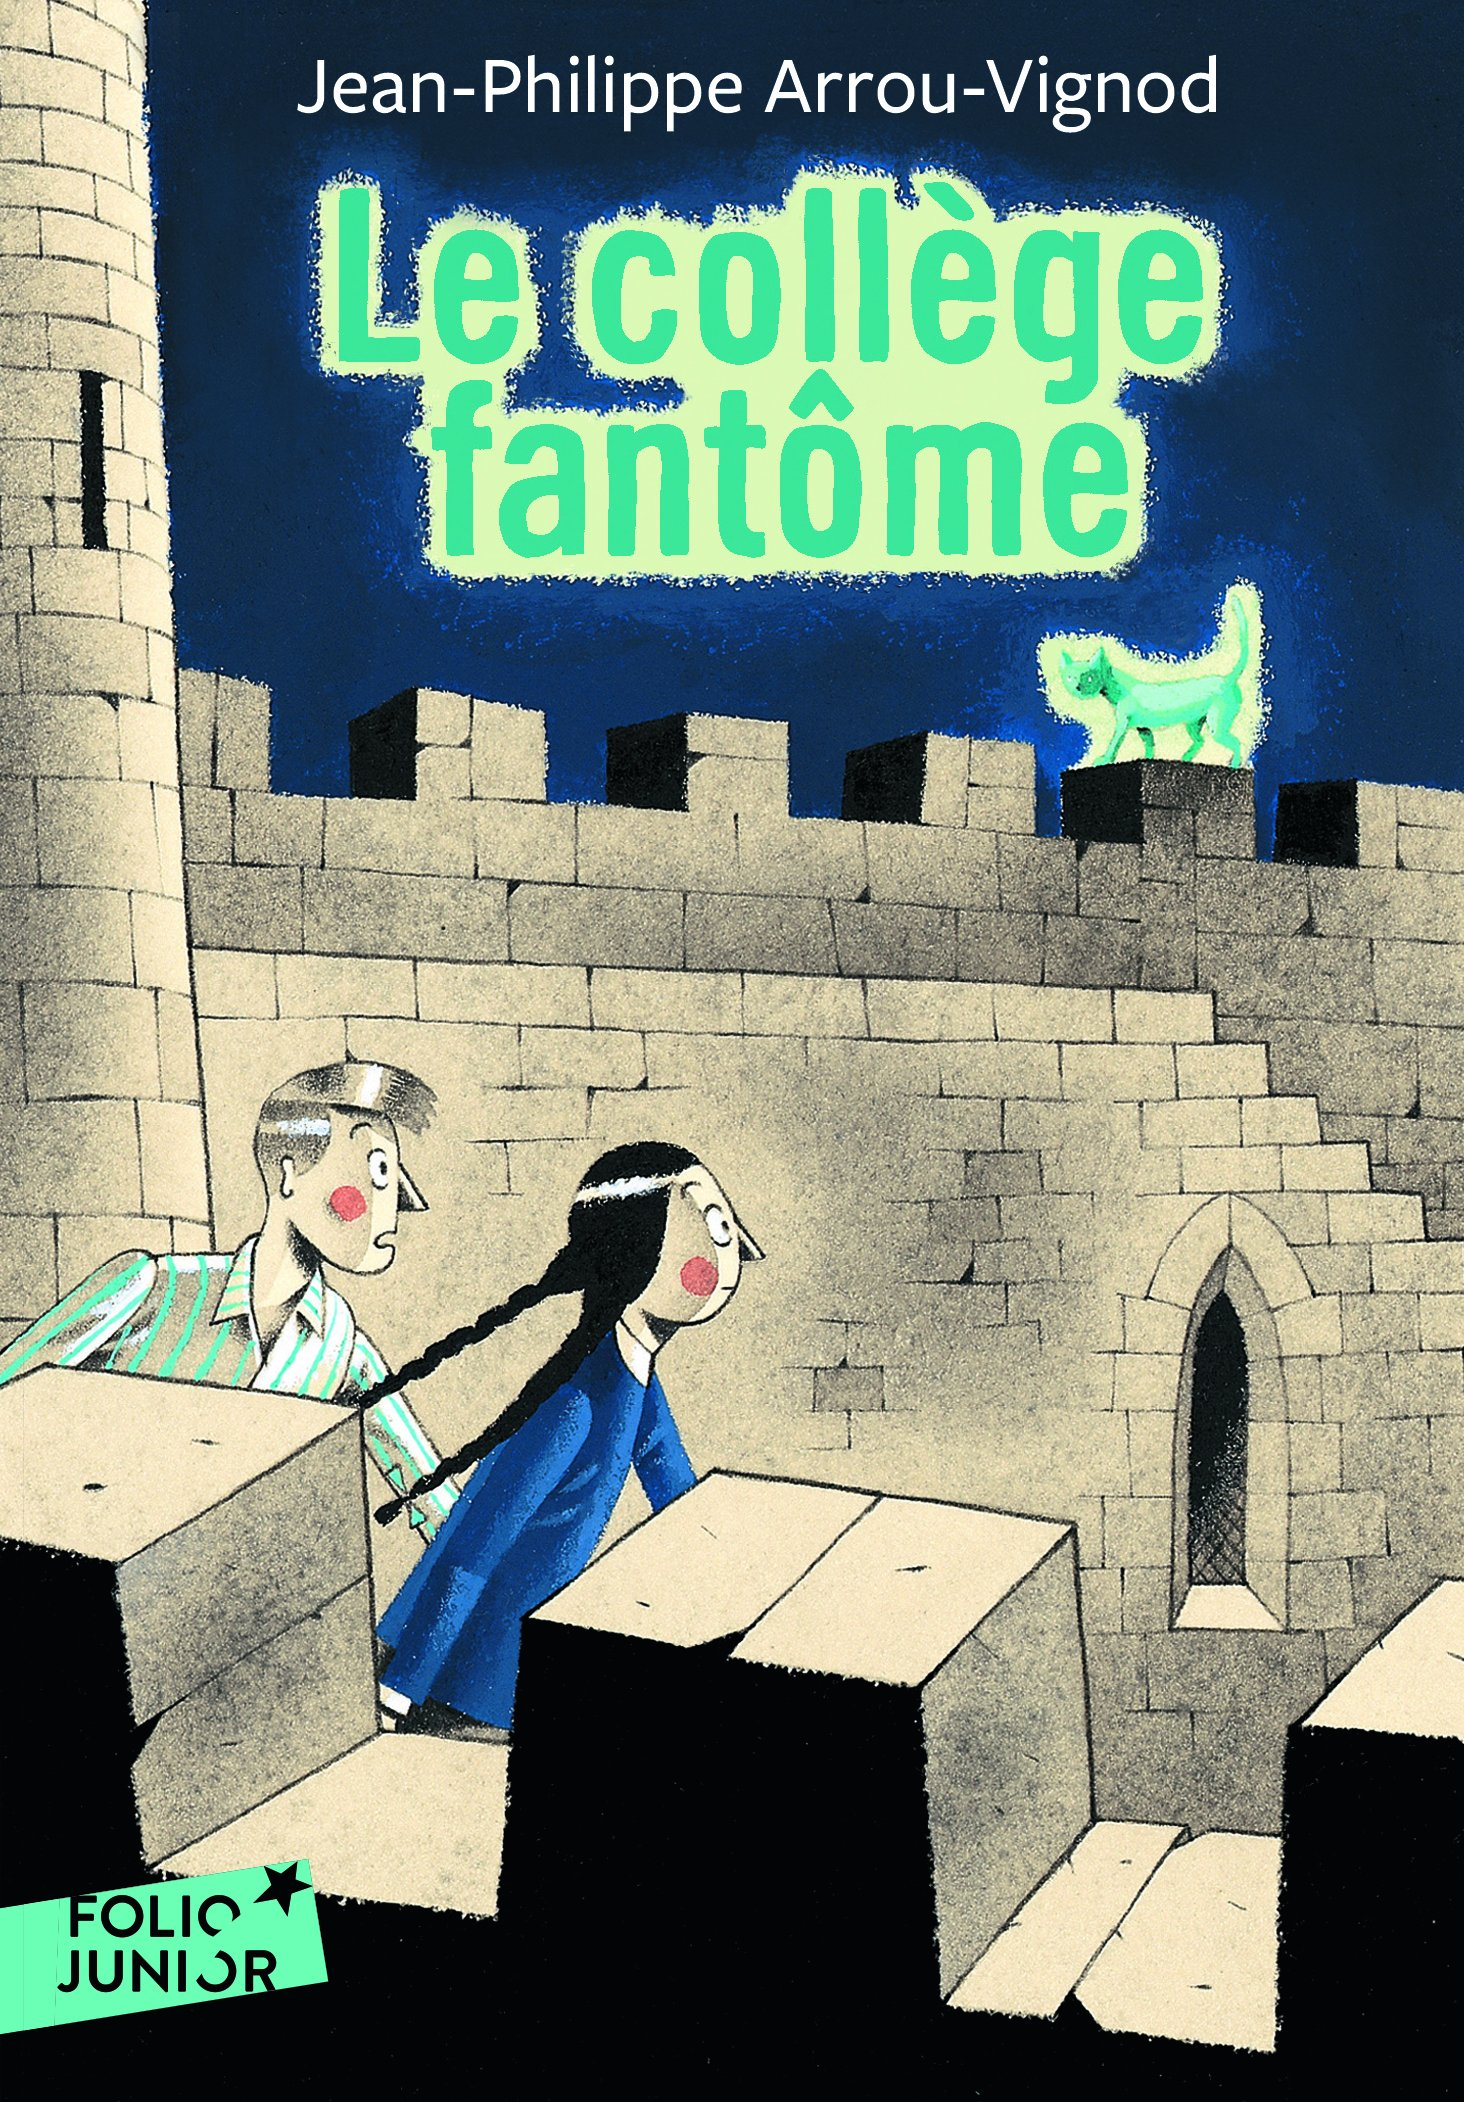 Download College Fantome (Folio Junior) (English and French Edition) pdf epub